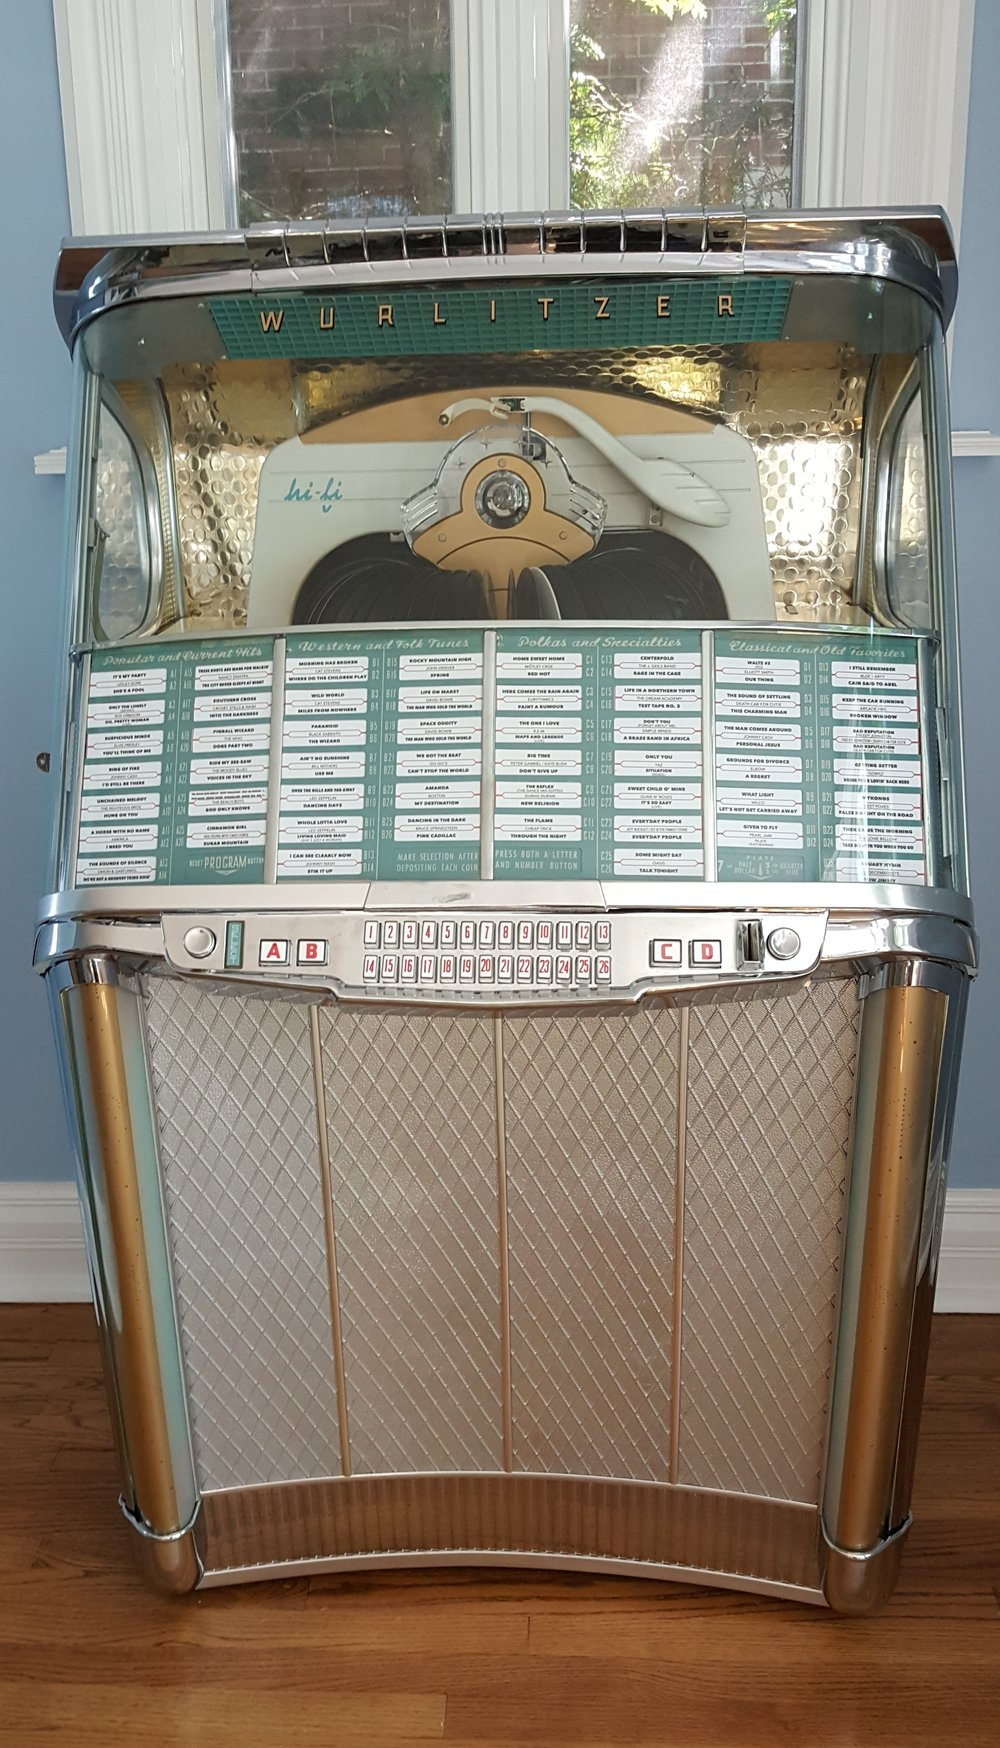 It is a jukebox. And it's a Wurlitzer. And it's mint. My clients husband had this baby delivered a few weeks ago and it's driving the vibe for the room refresh. Dance party on reveal day!